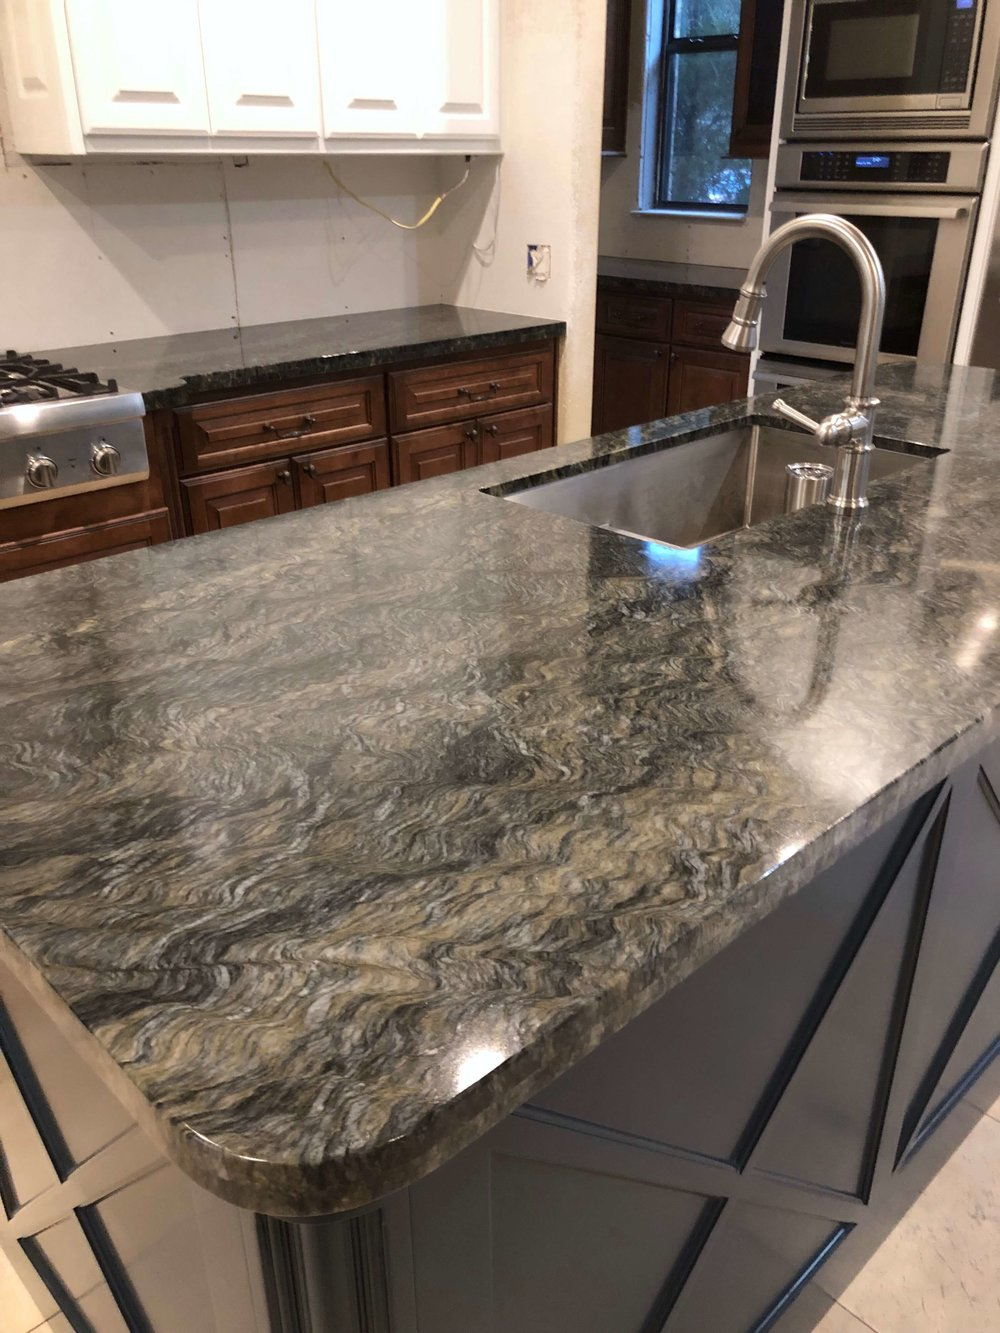 IN PROGRESS - Kitchen remodel with quartzite countertops on new painted kitchen island with X design panels | Carla Aston, Designer